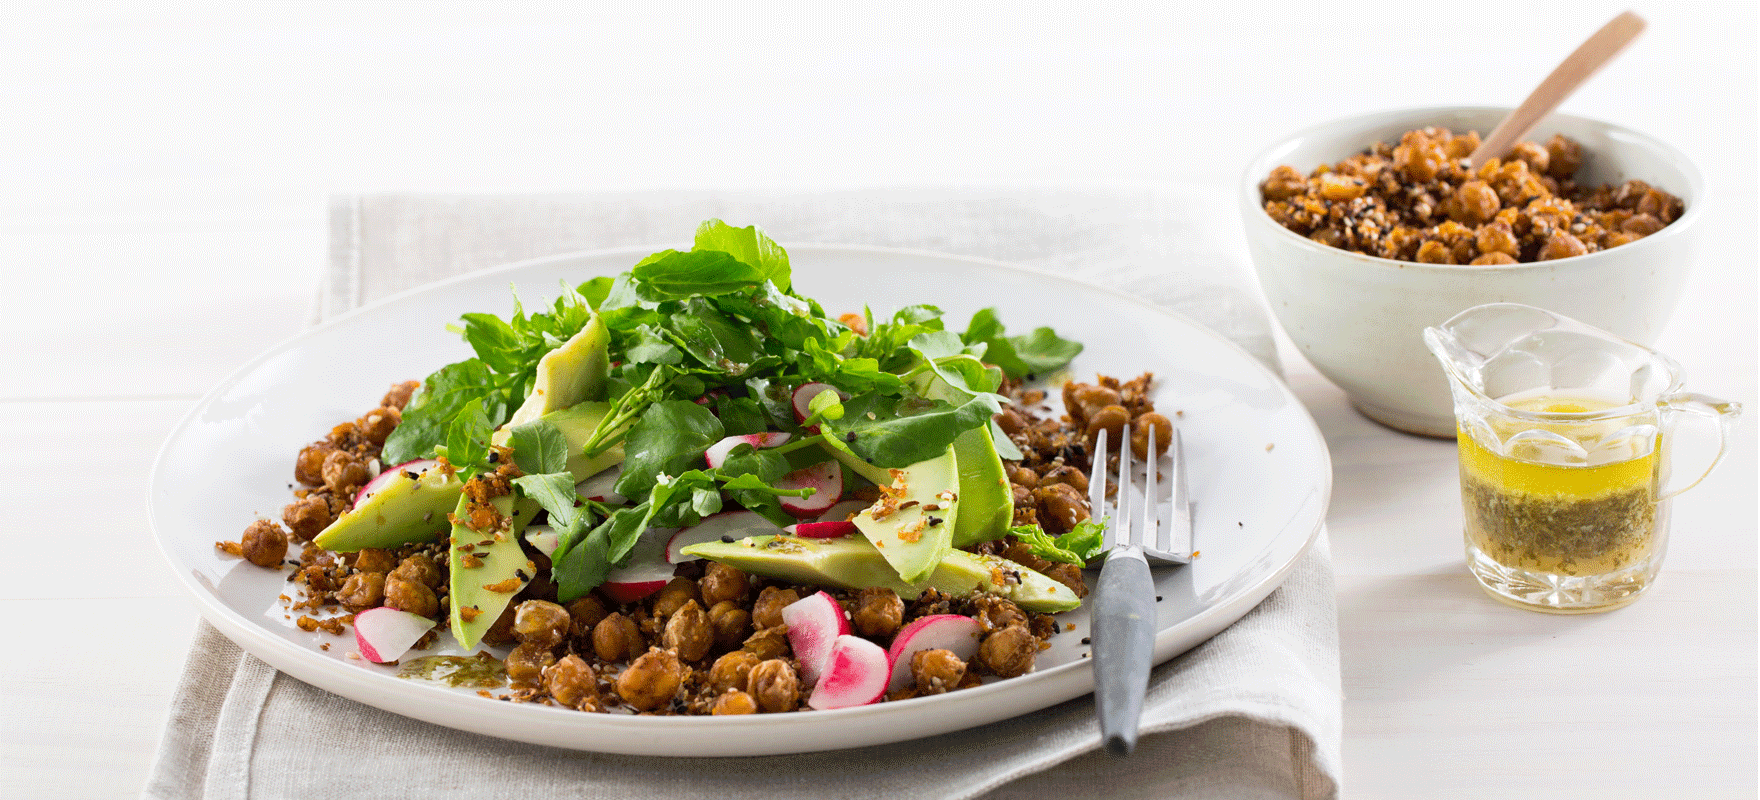 Spiced chickpea salad with avocado and watercress image 1